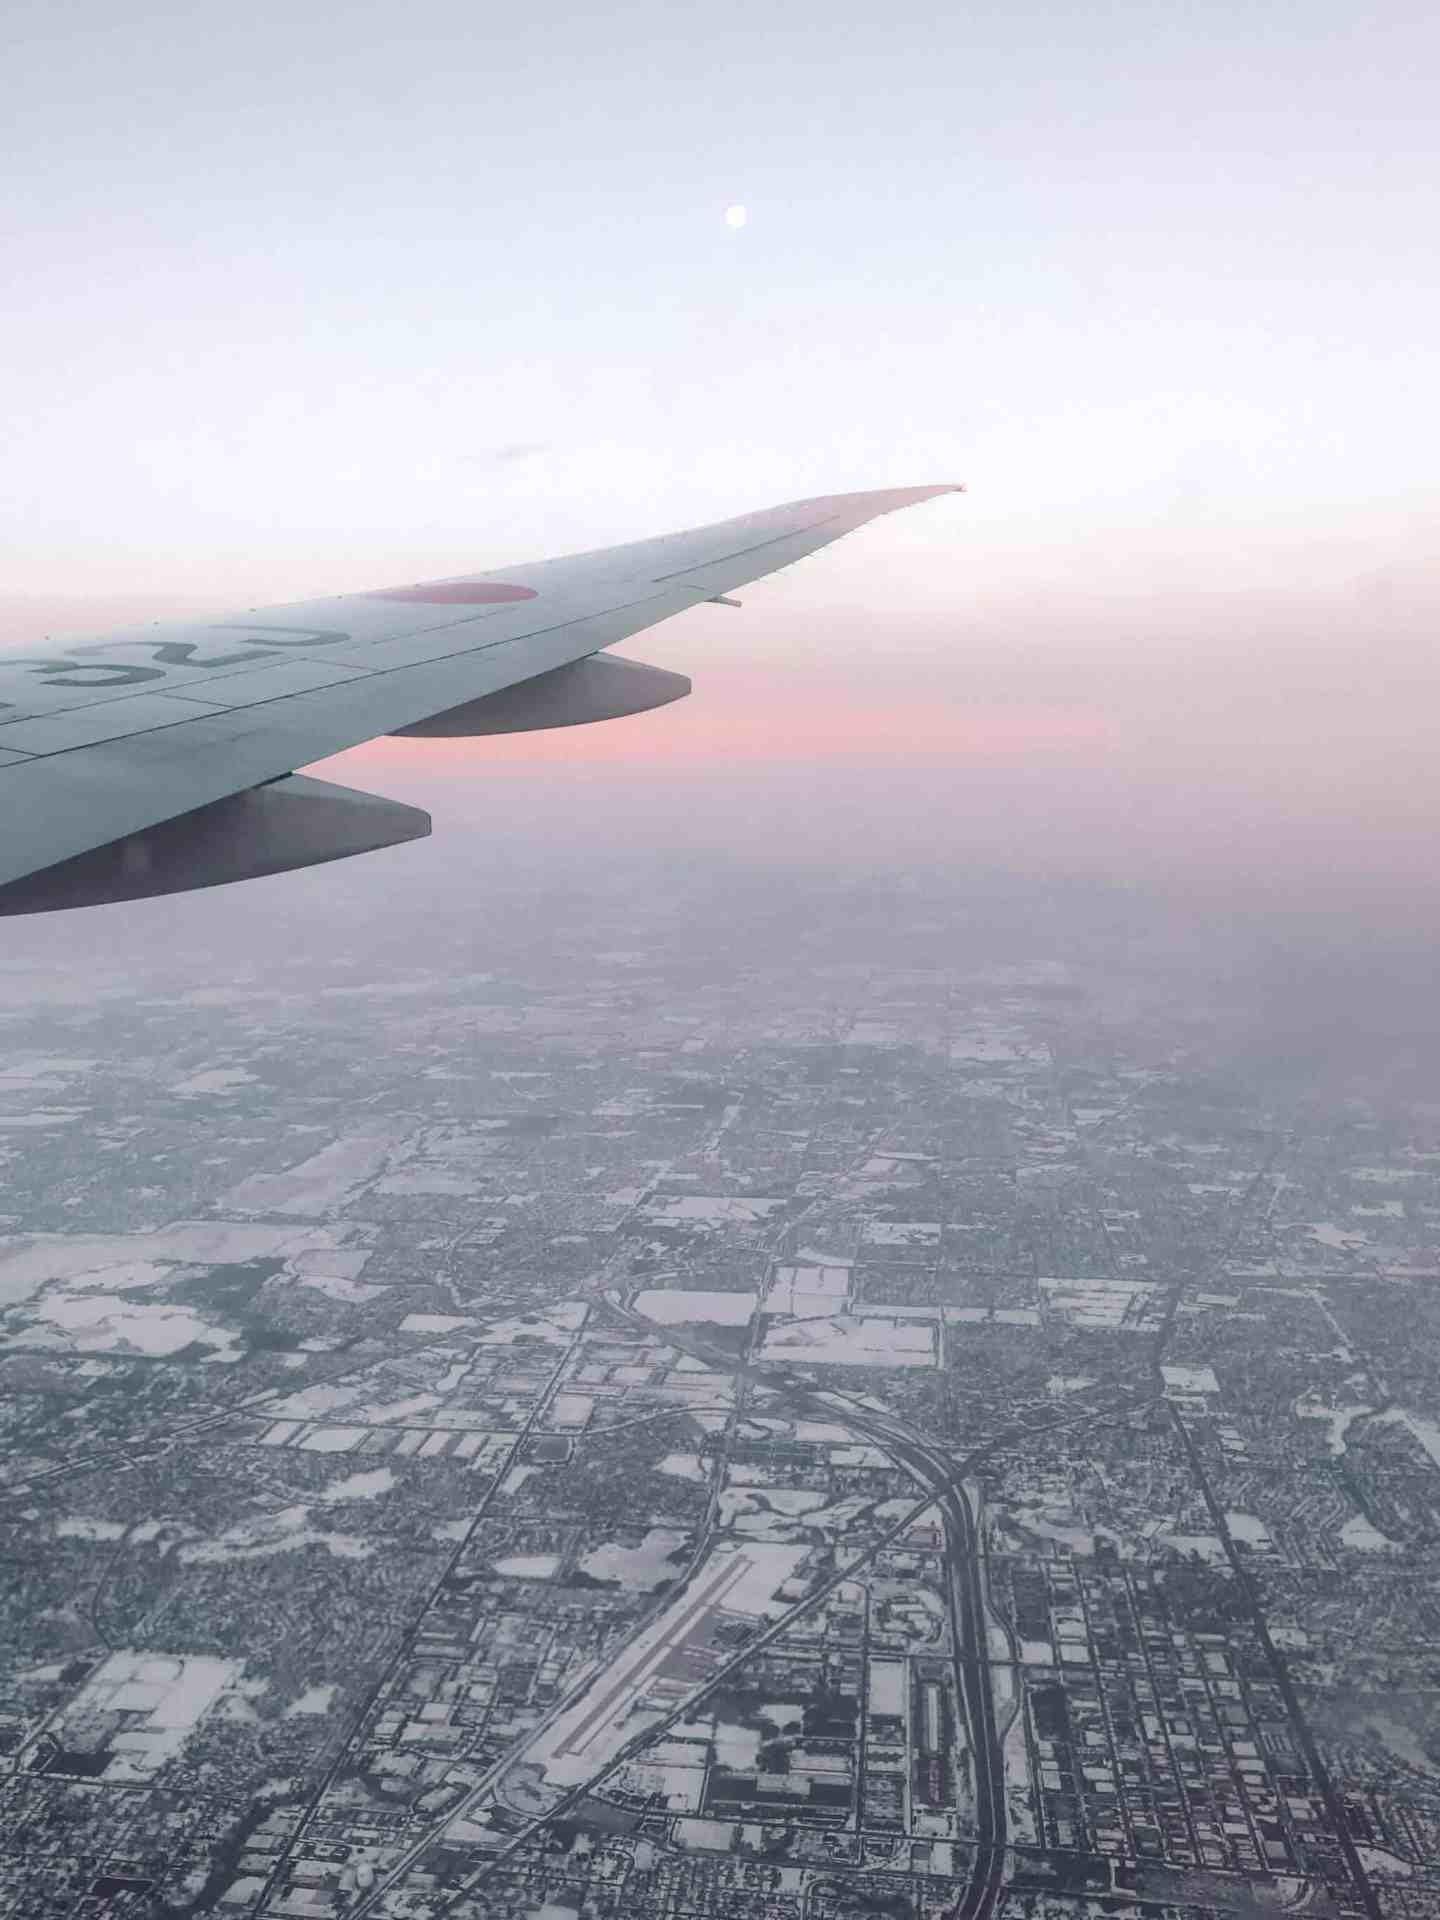 View from an airplane